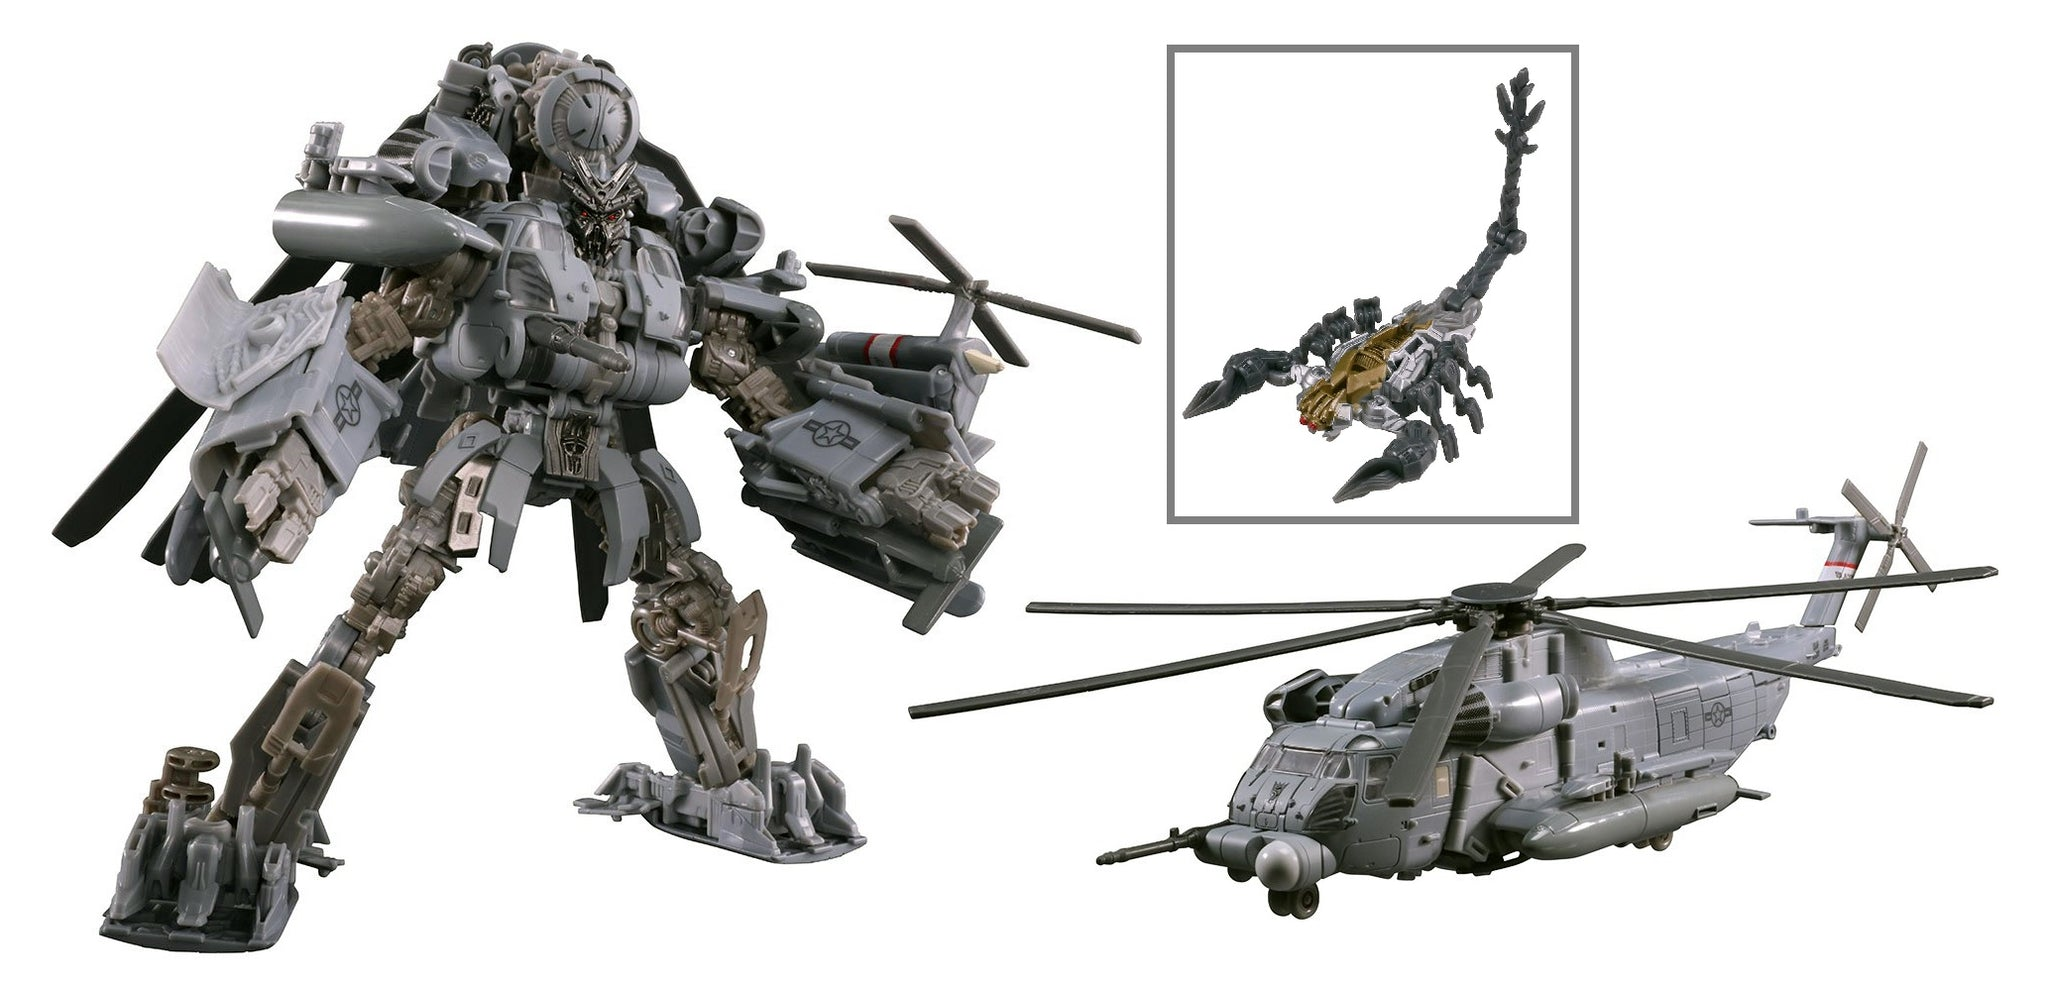 Transformers - Studio Series 08 - Leader Class - Movie 1 - Decepticon 8.5-inch Blackout and Scorponok Action Figures (E0980)